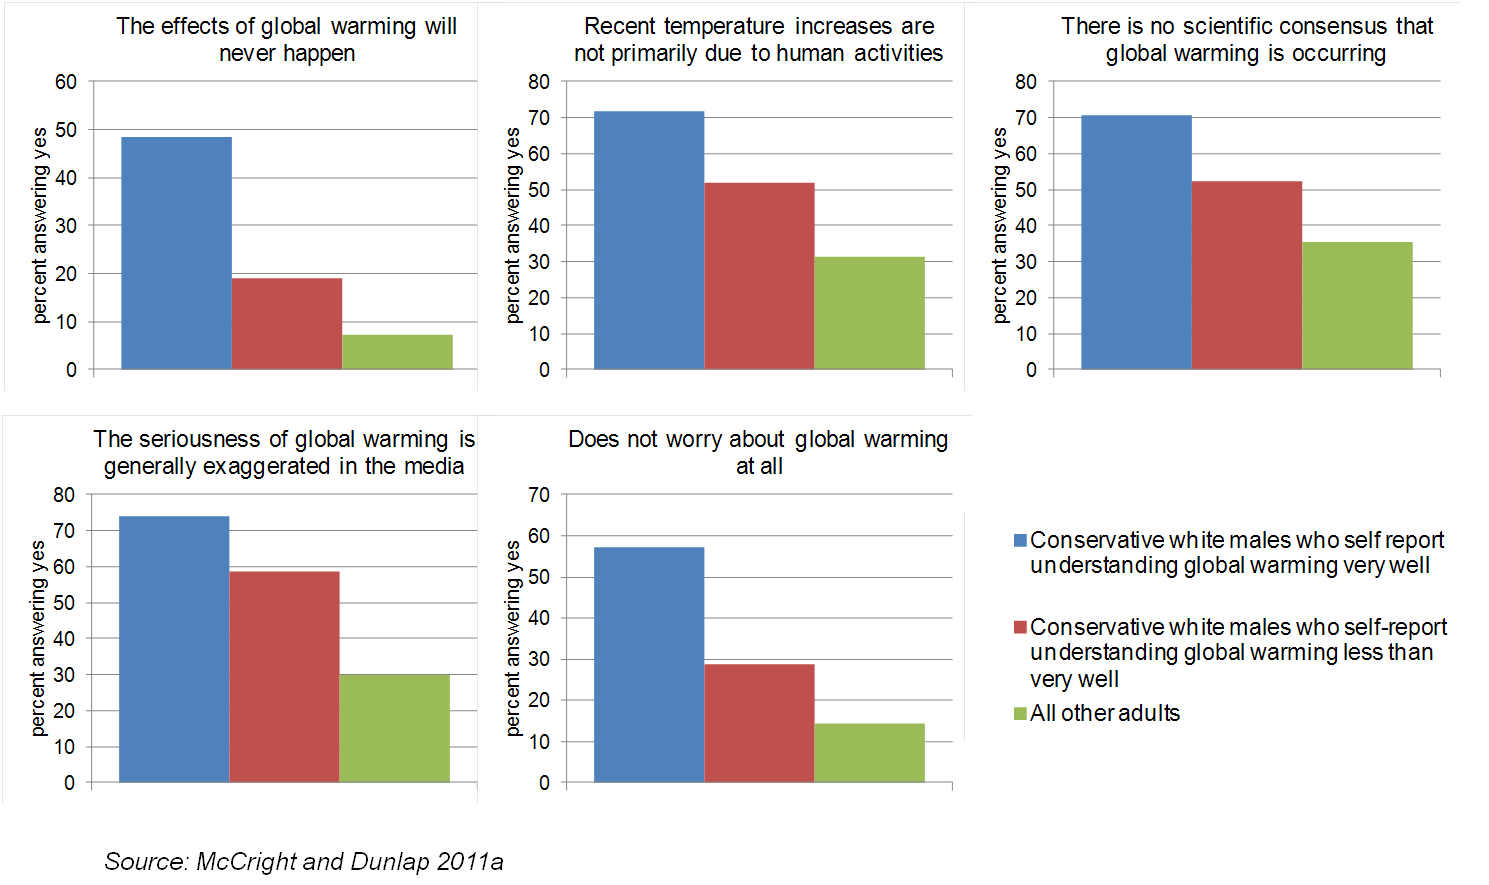 Figure 3 - Climate change views of conservative white males and others.